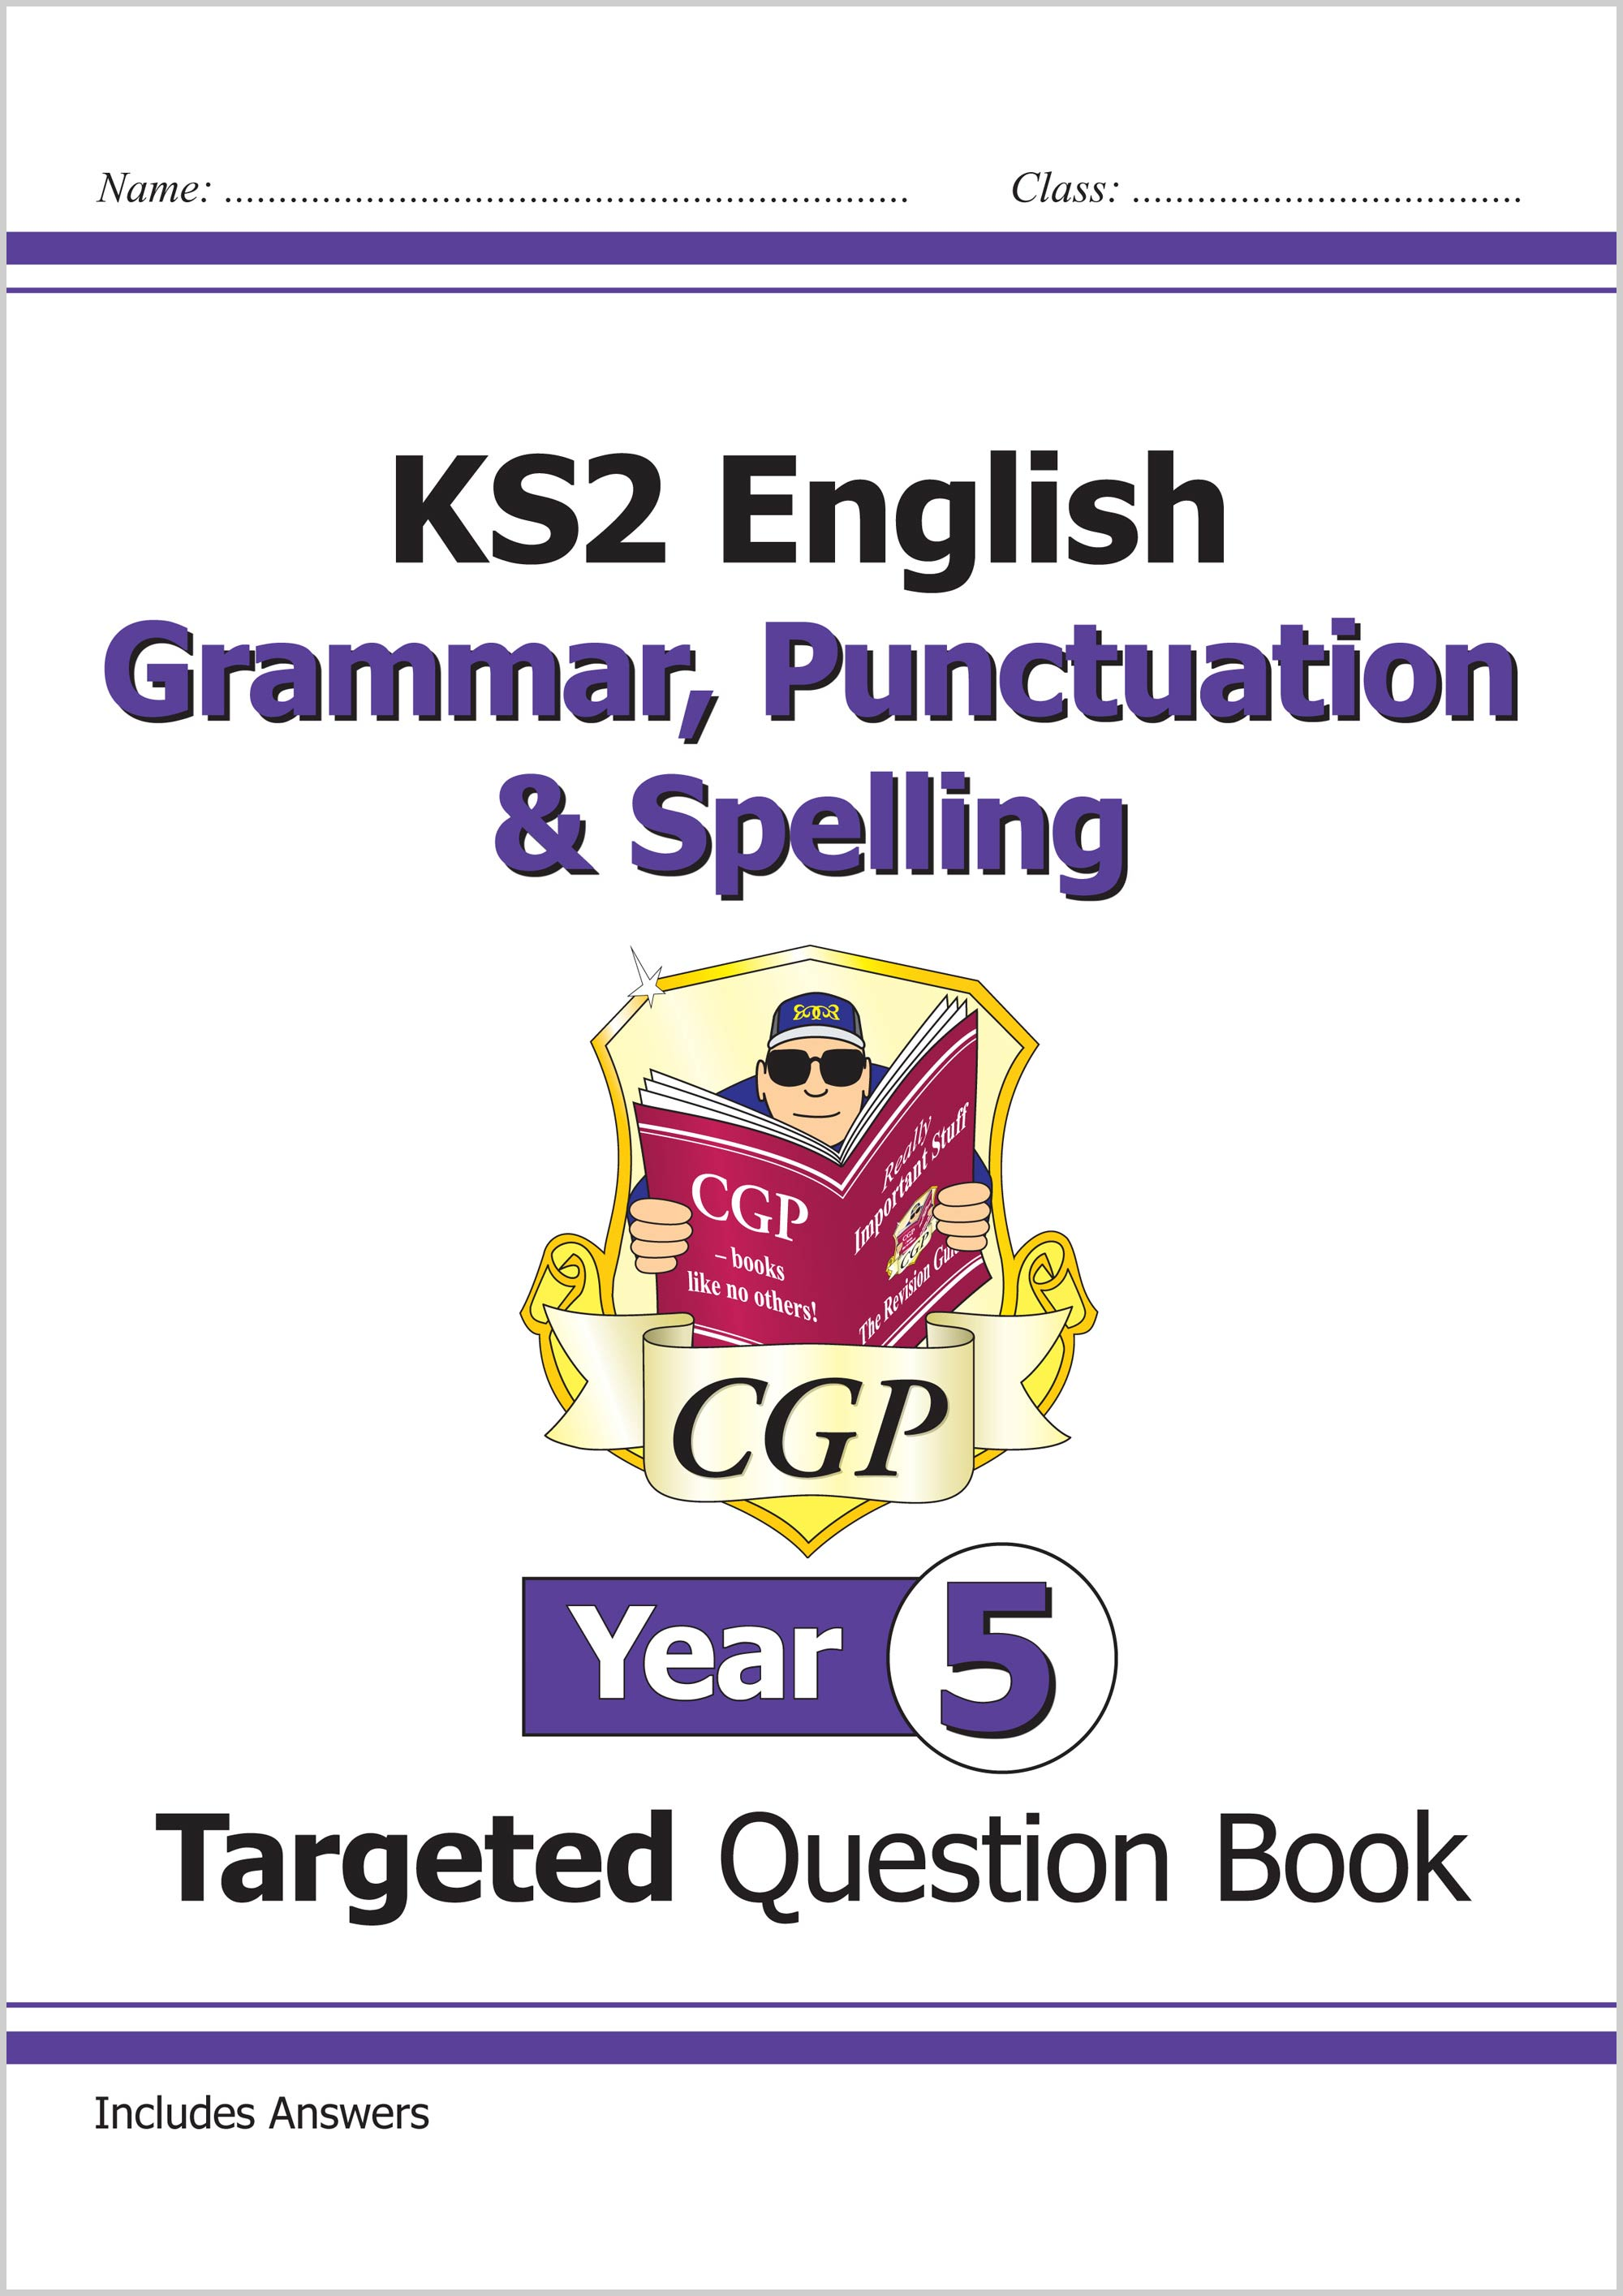 E5W22 - KS2 English Targeted Question Book: Grammar, Punctuation & Spelling - Year 5